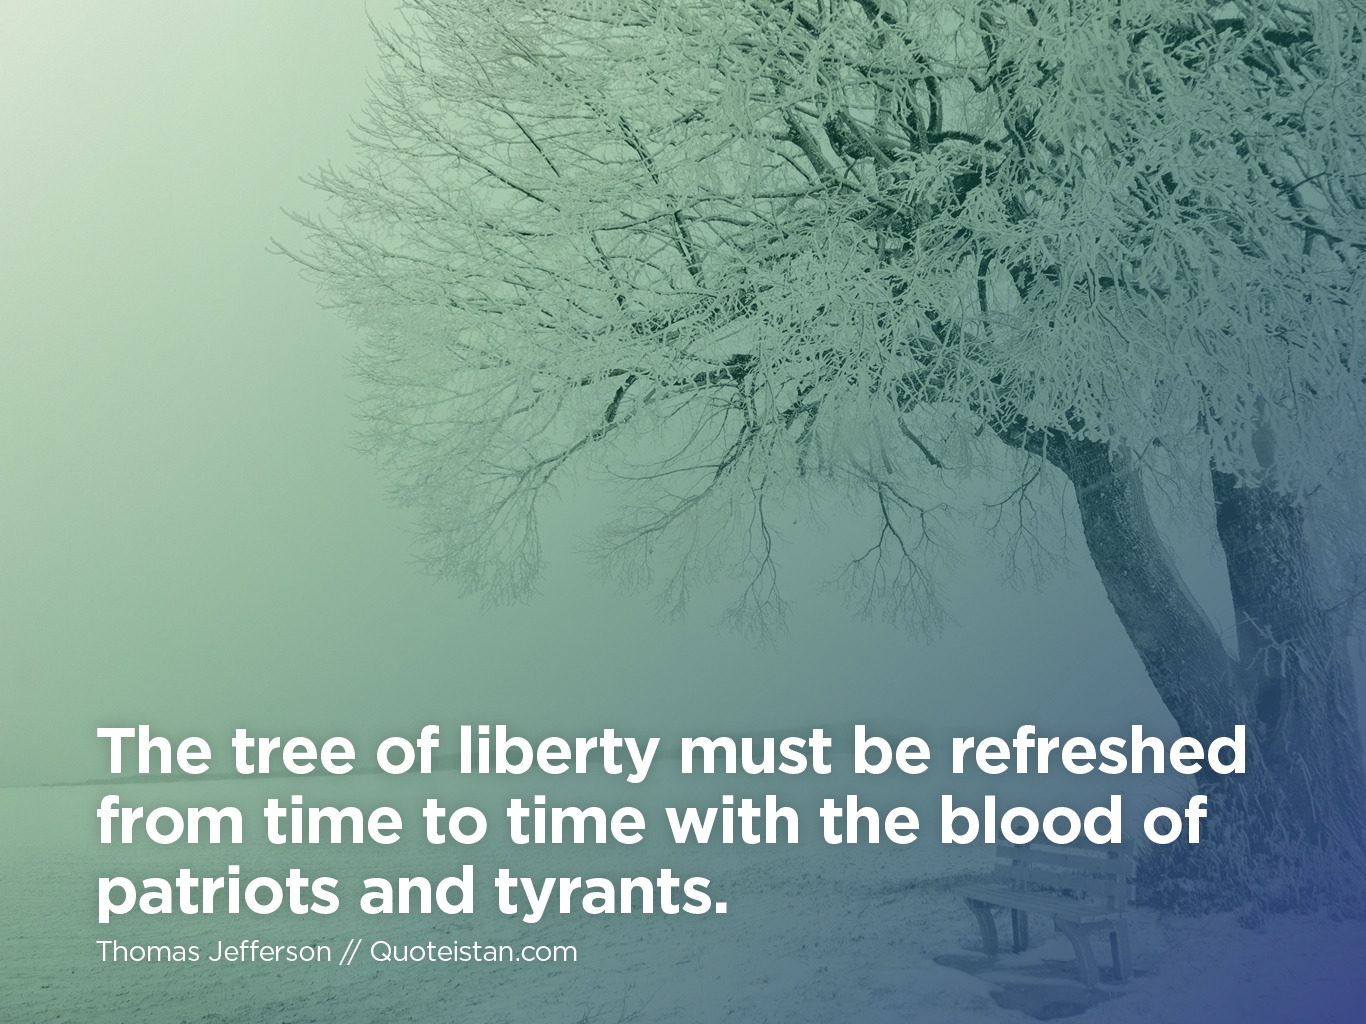 The tree of liberty must be refreshed from time to time with the blood of patriots and tyrants.